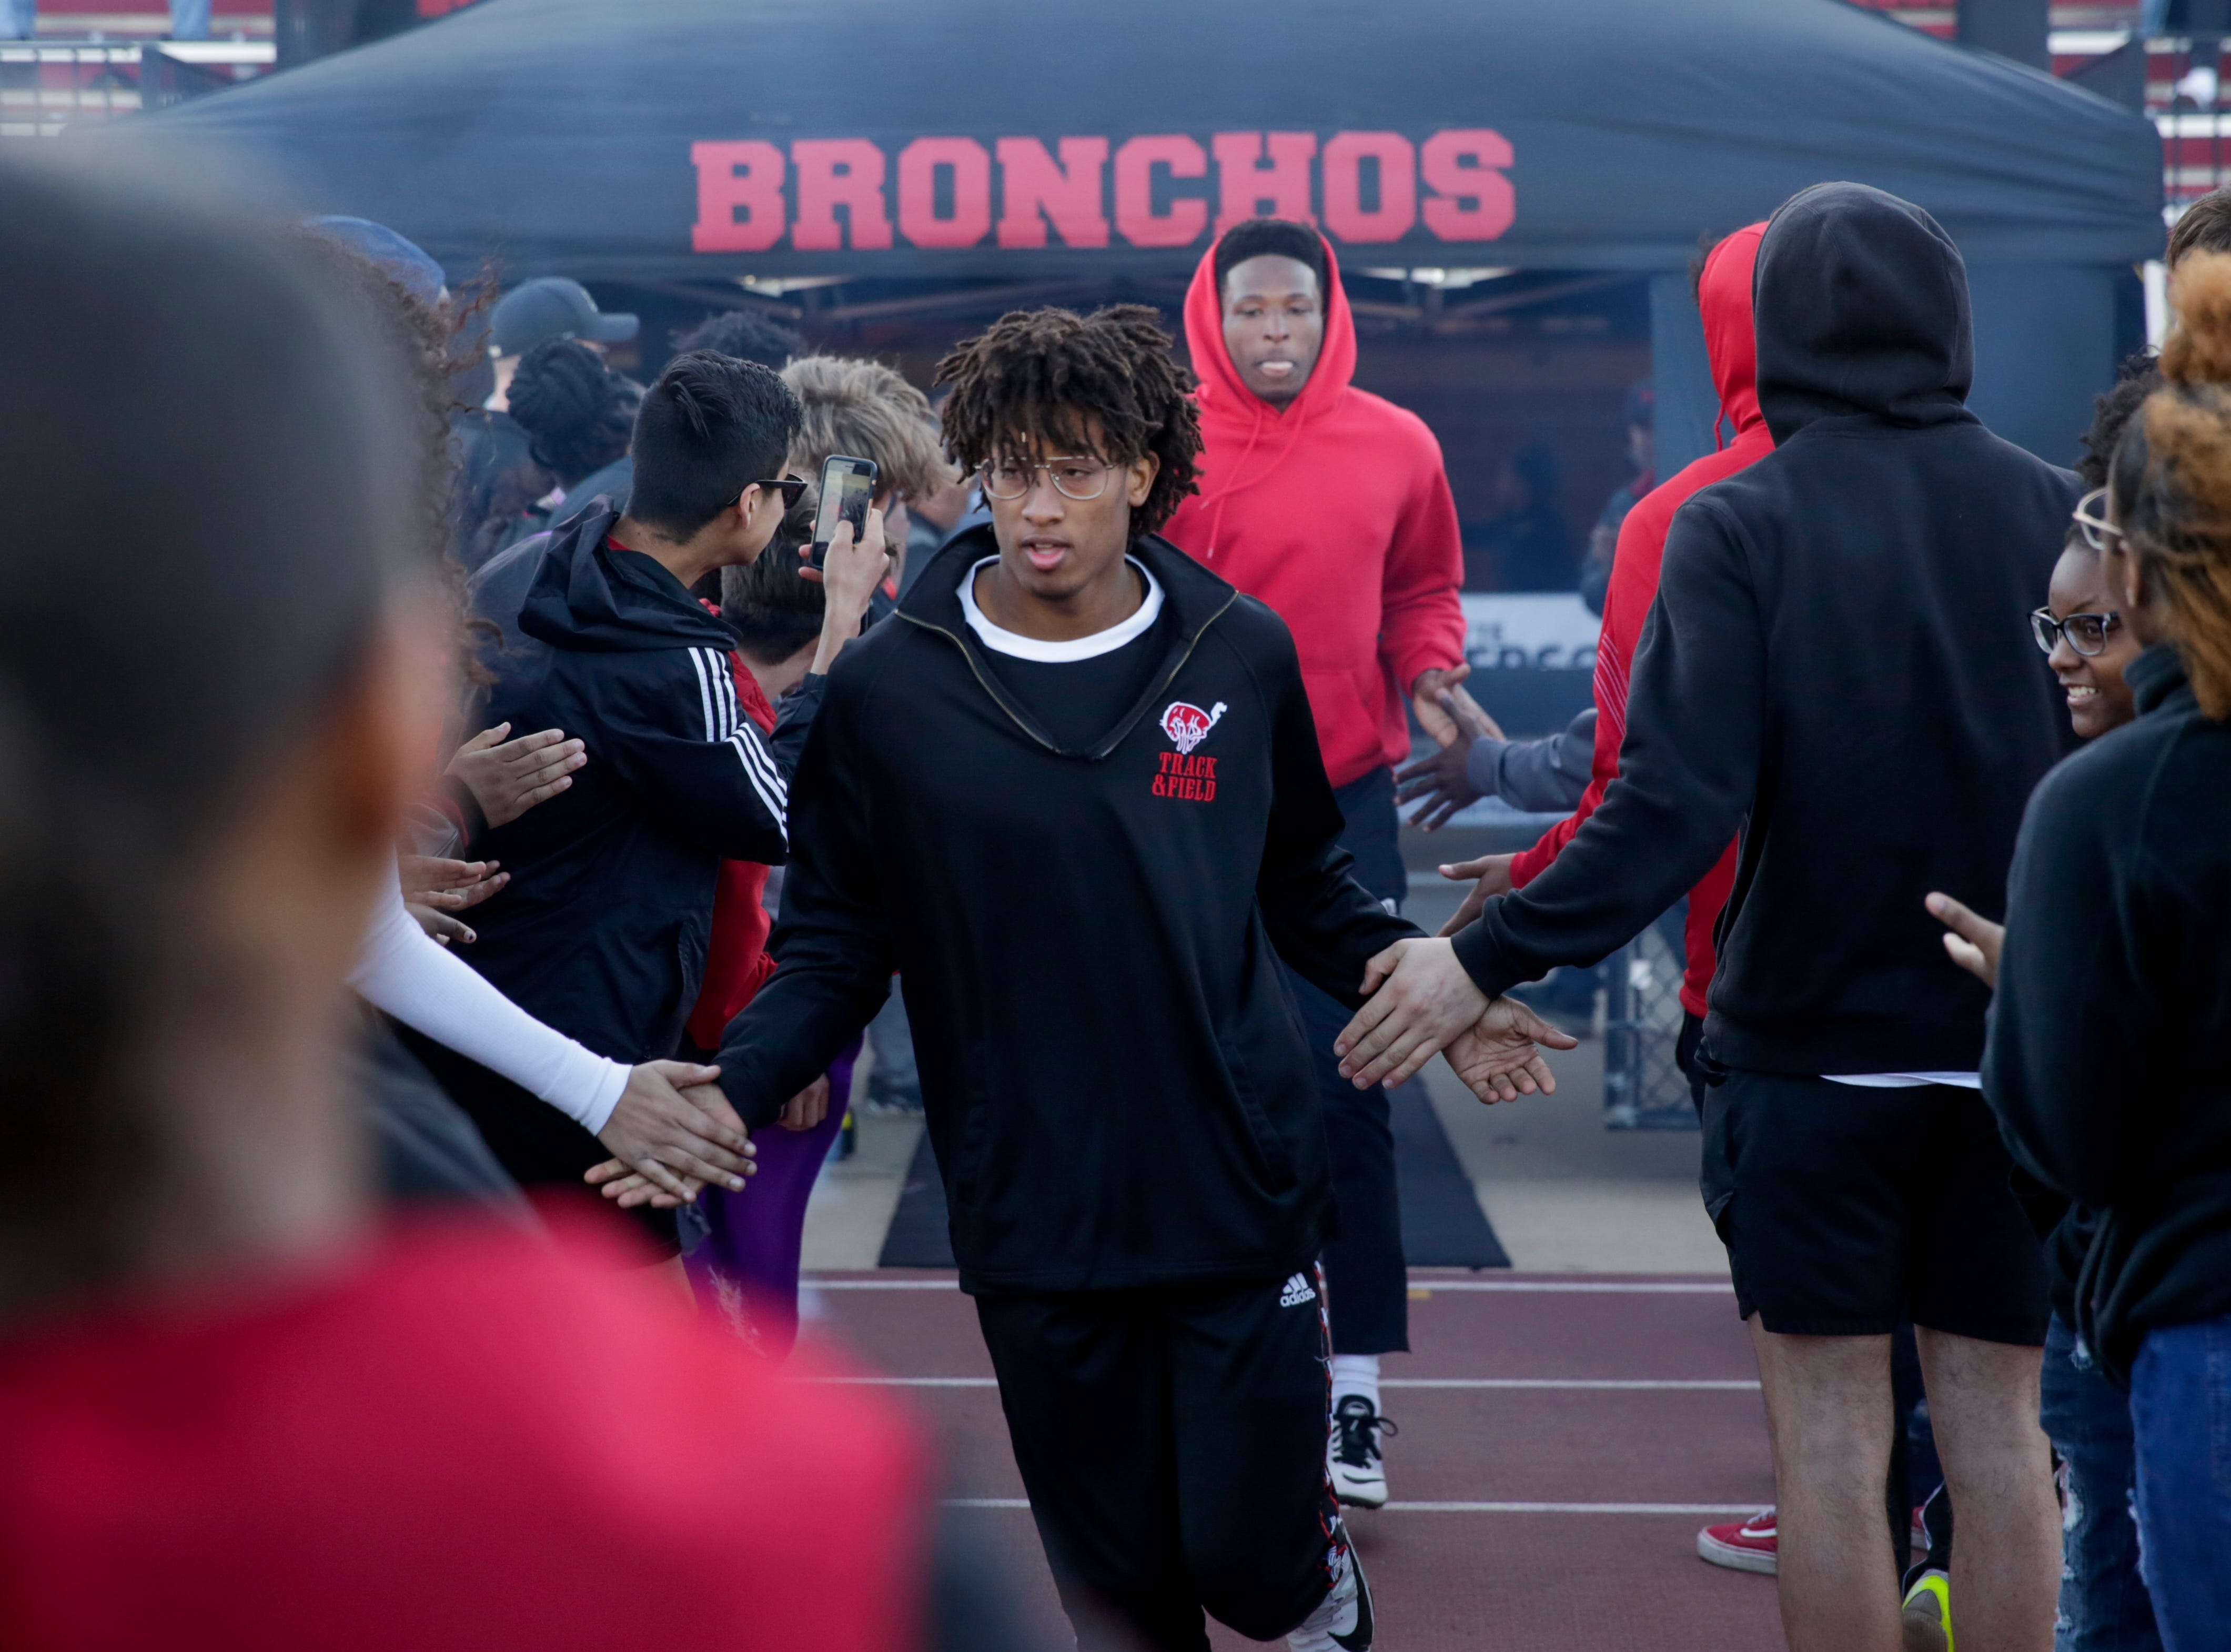 Lafayette Jeff's Thomas Hogan comes out of the tunnel before competing in the men's 4x100 meter relay during the 2019 Sprinters Showcase, Friday, April 12, 2019, at Lafayette Jeff High School in Lafayette.